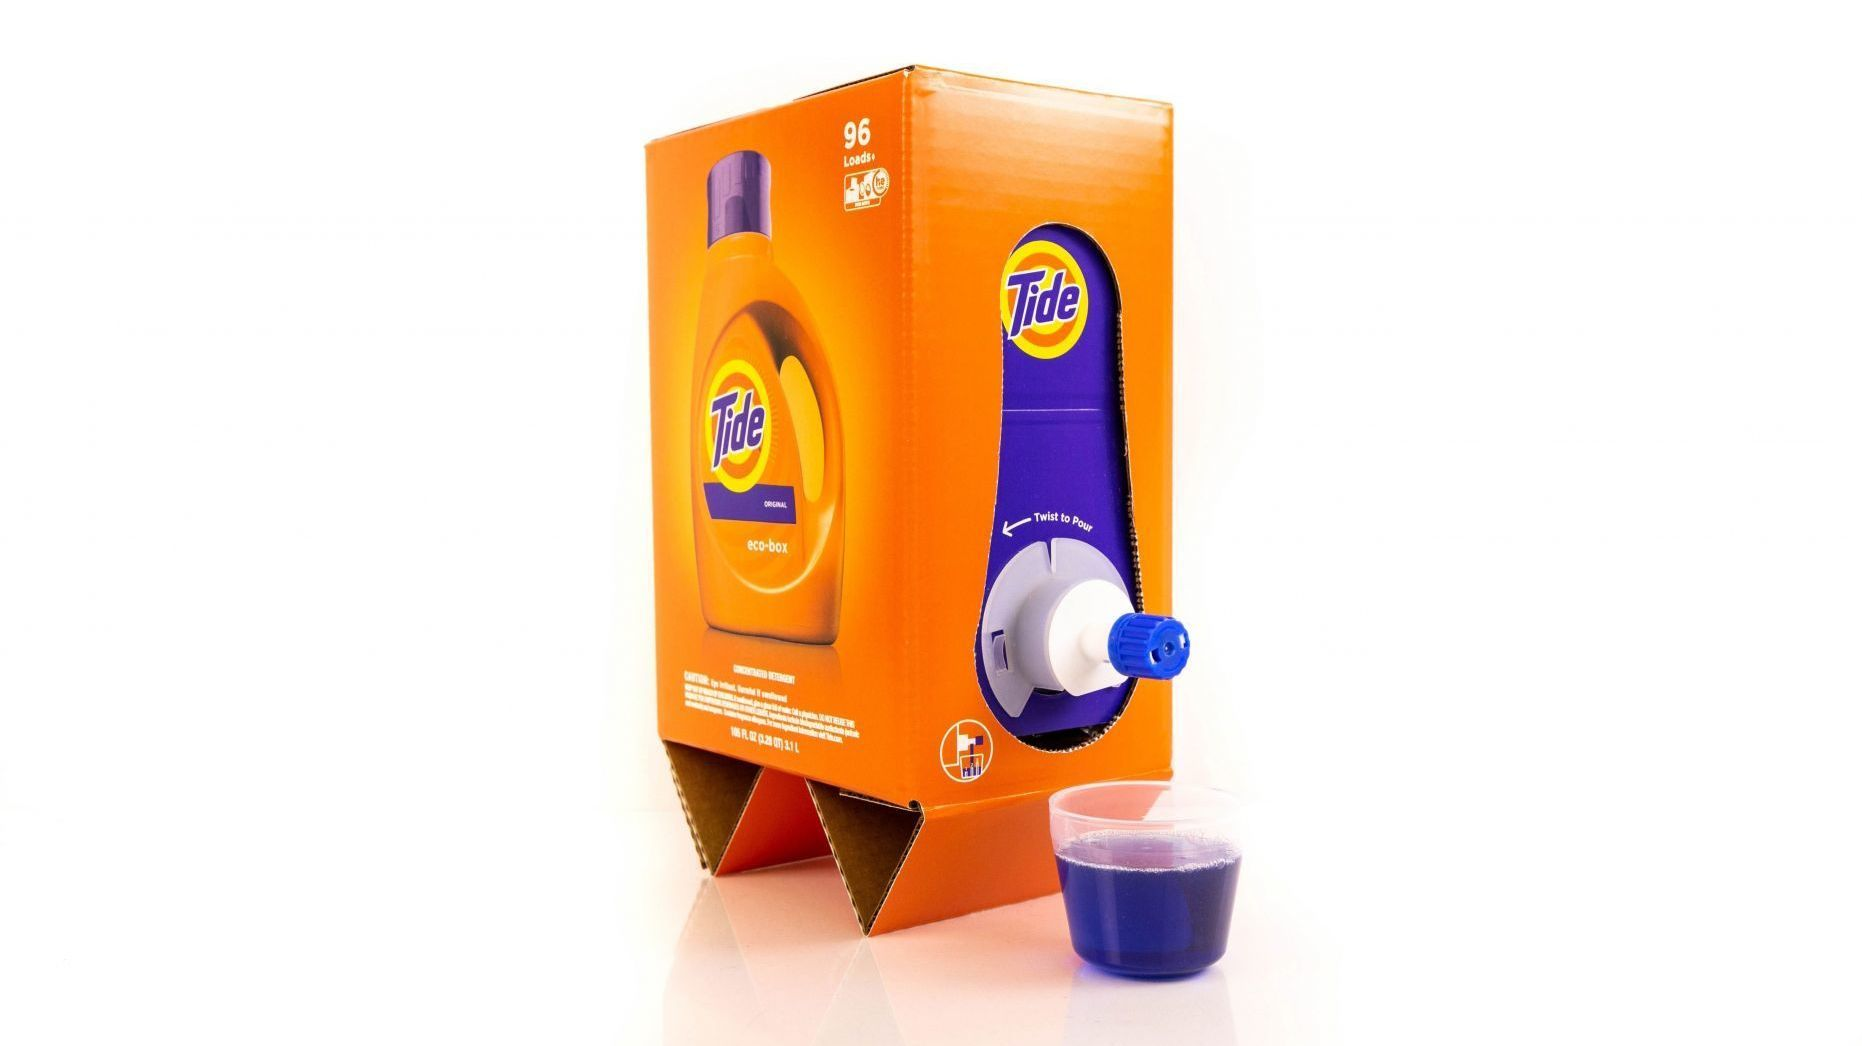 Tide Out Here Making Laundry Detergent Look Like Boxed Wine